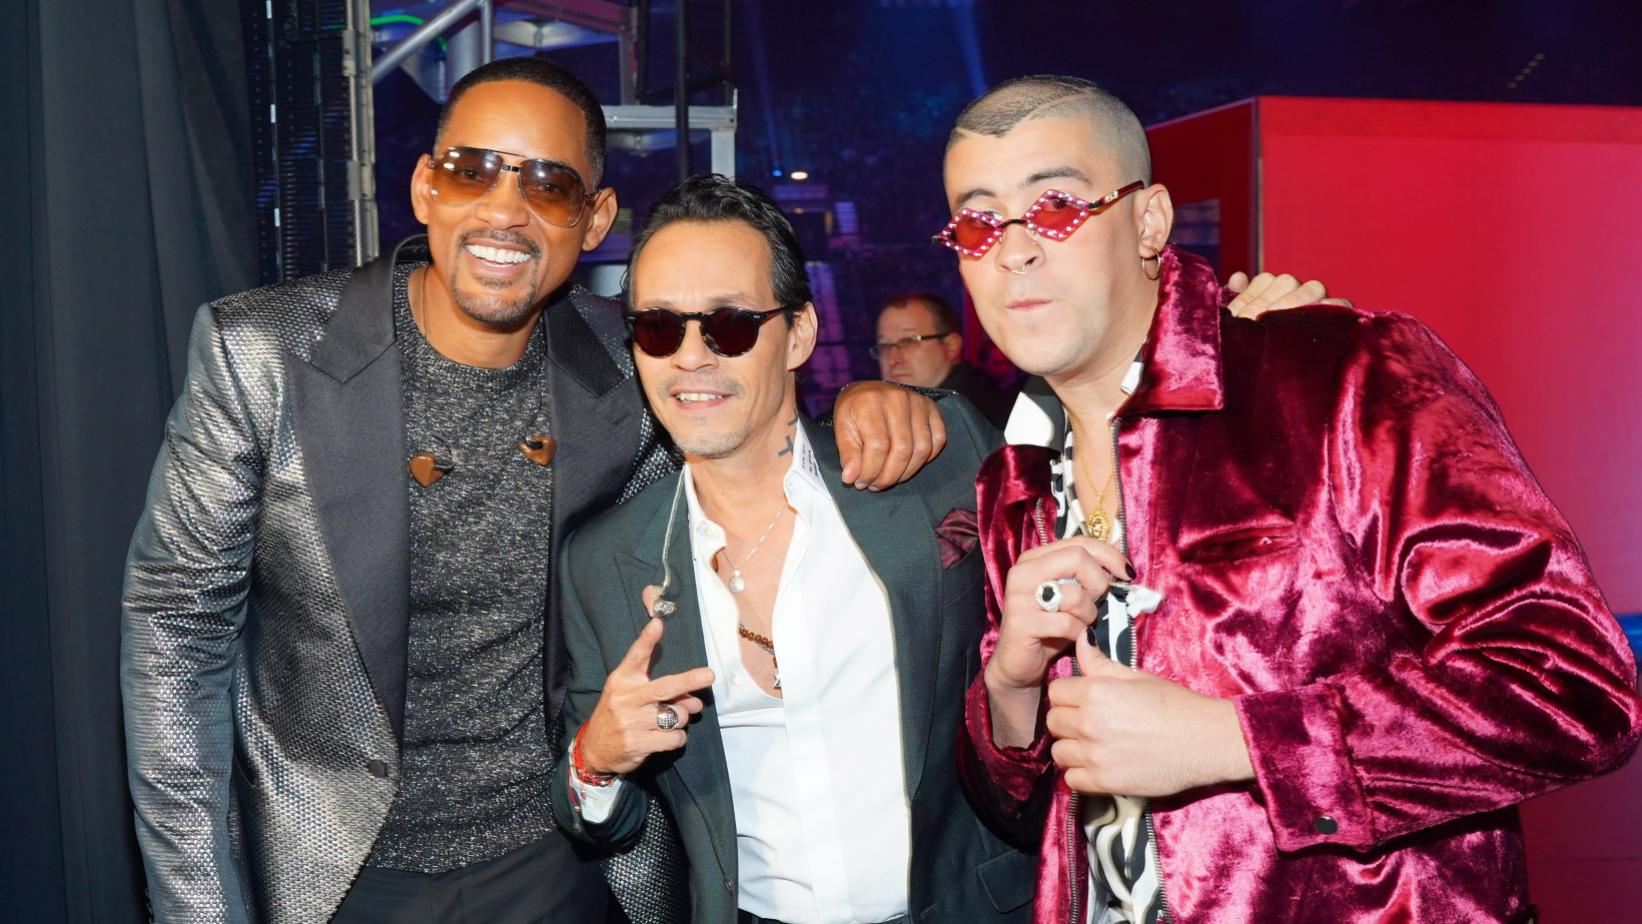 Will Smith, Marc Anthony, and Bad Bunny